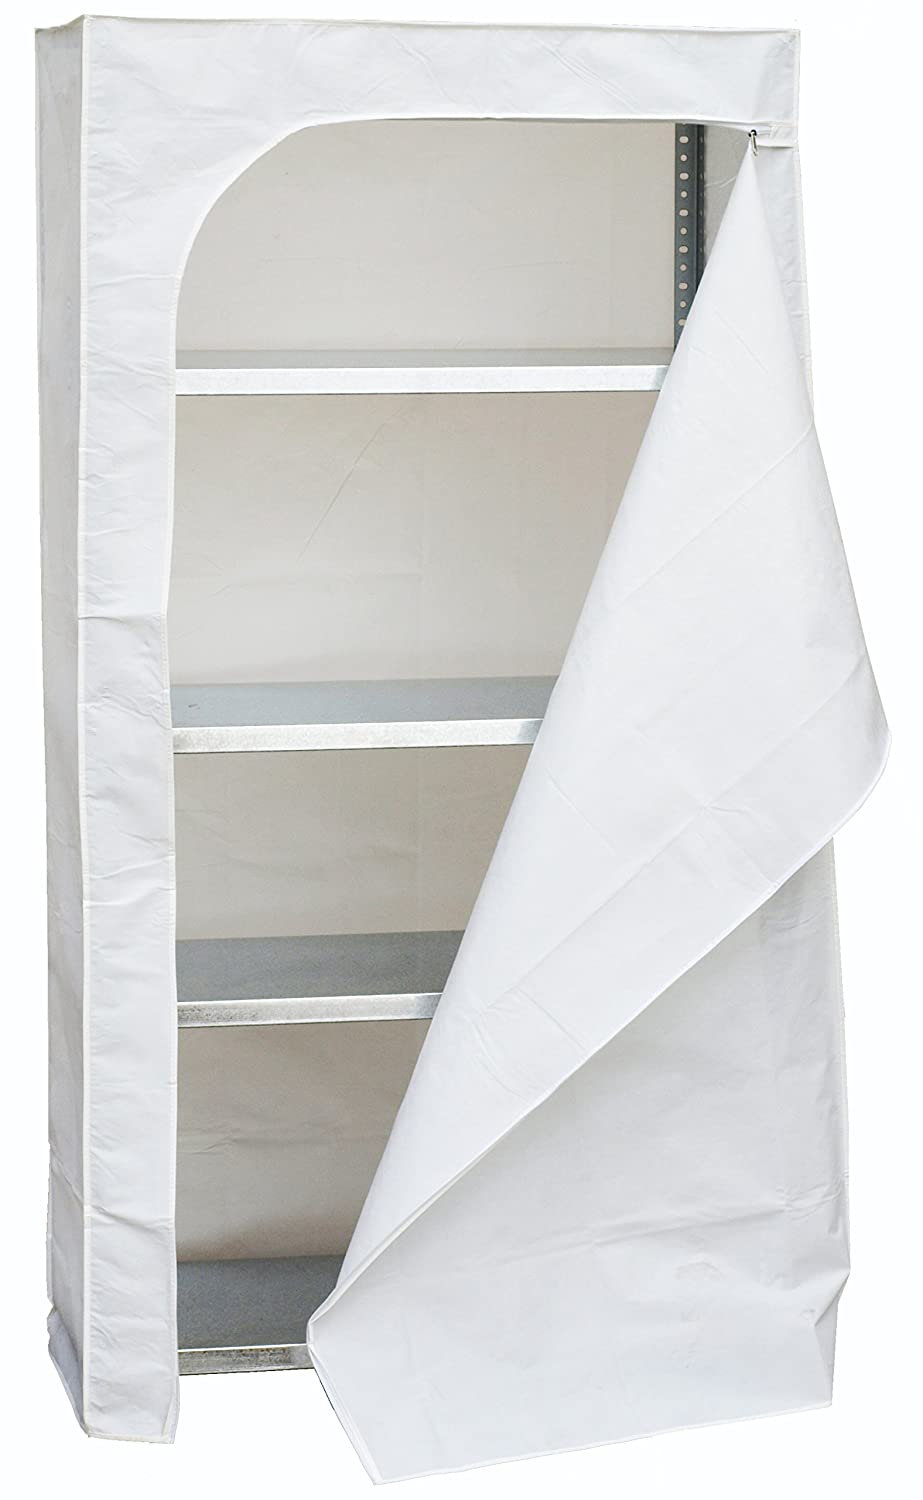 Simonrack 8425437048067 2000 x 1000 x 300 mm Cover for Shelves - White